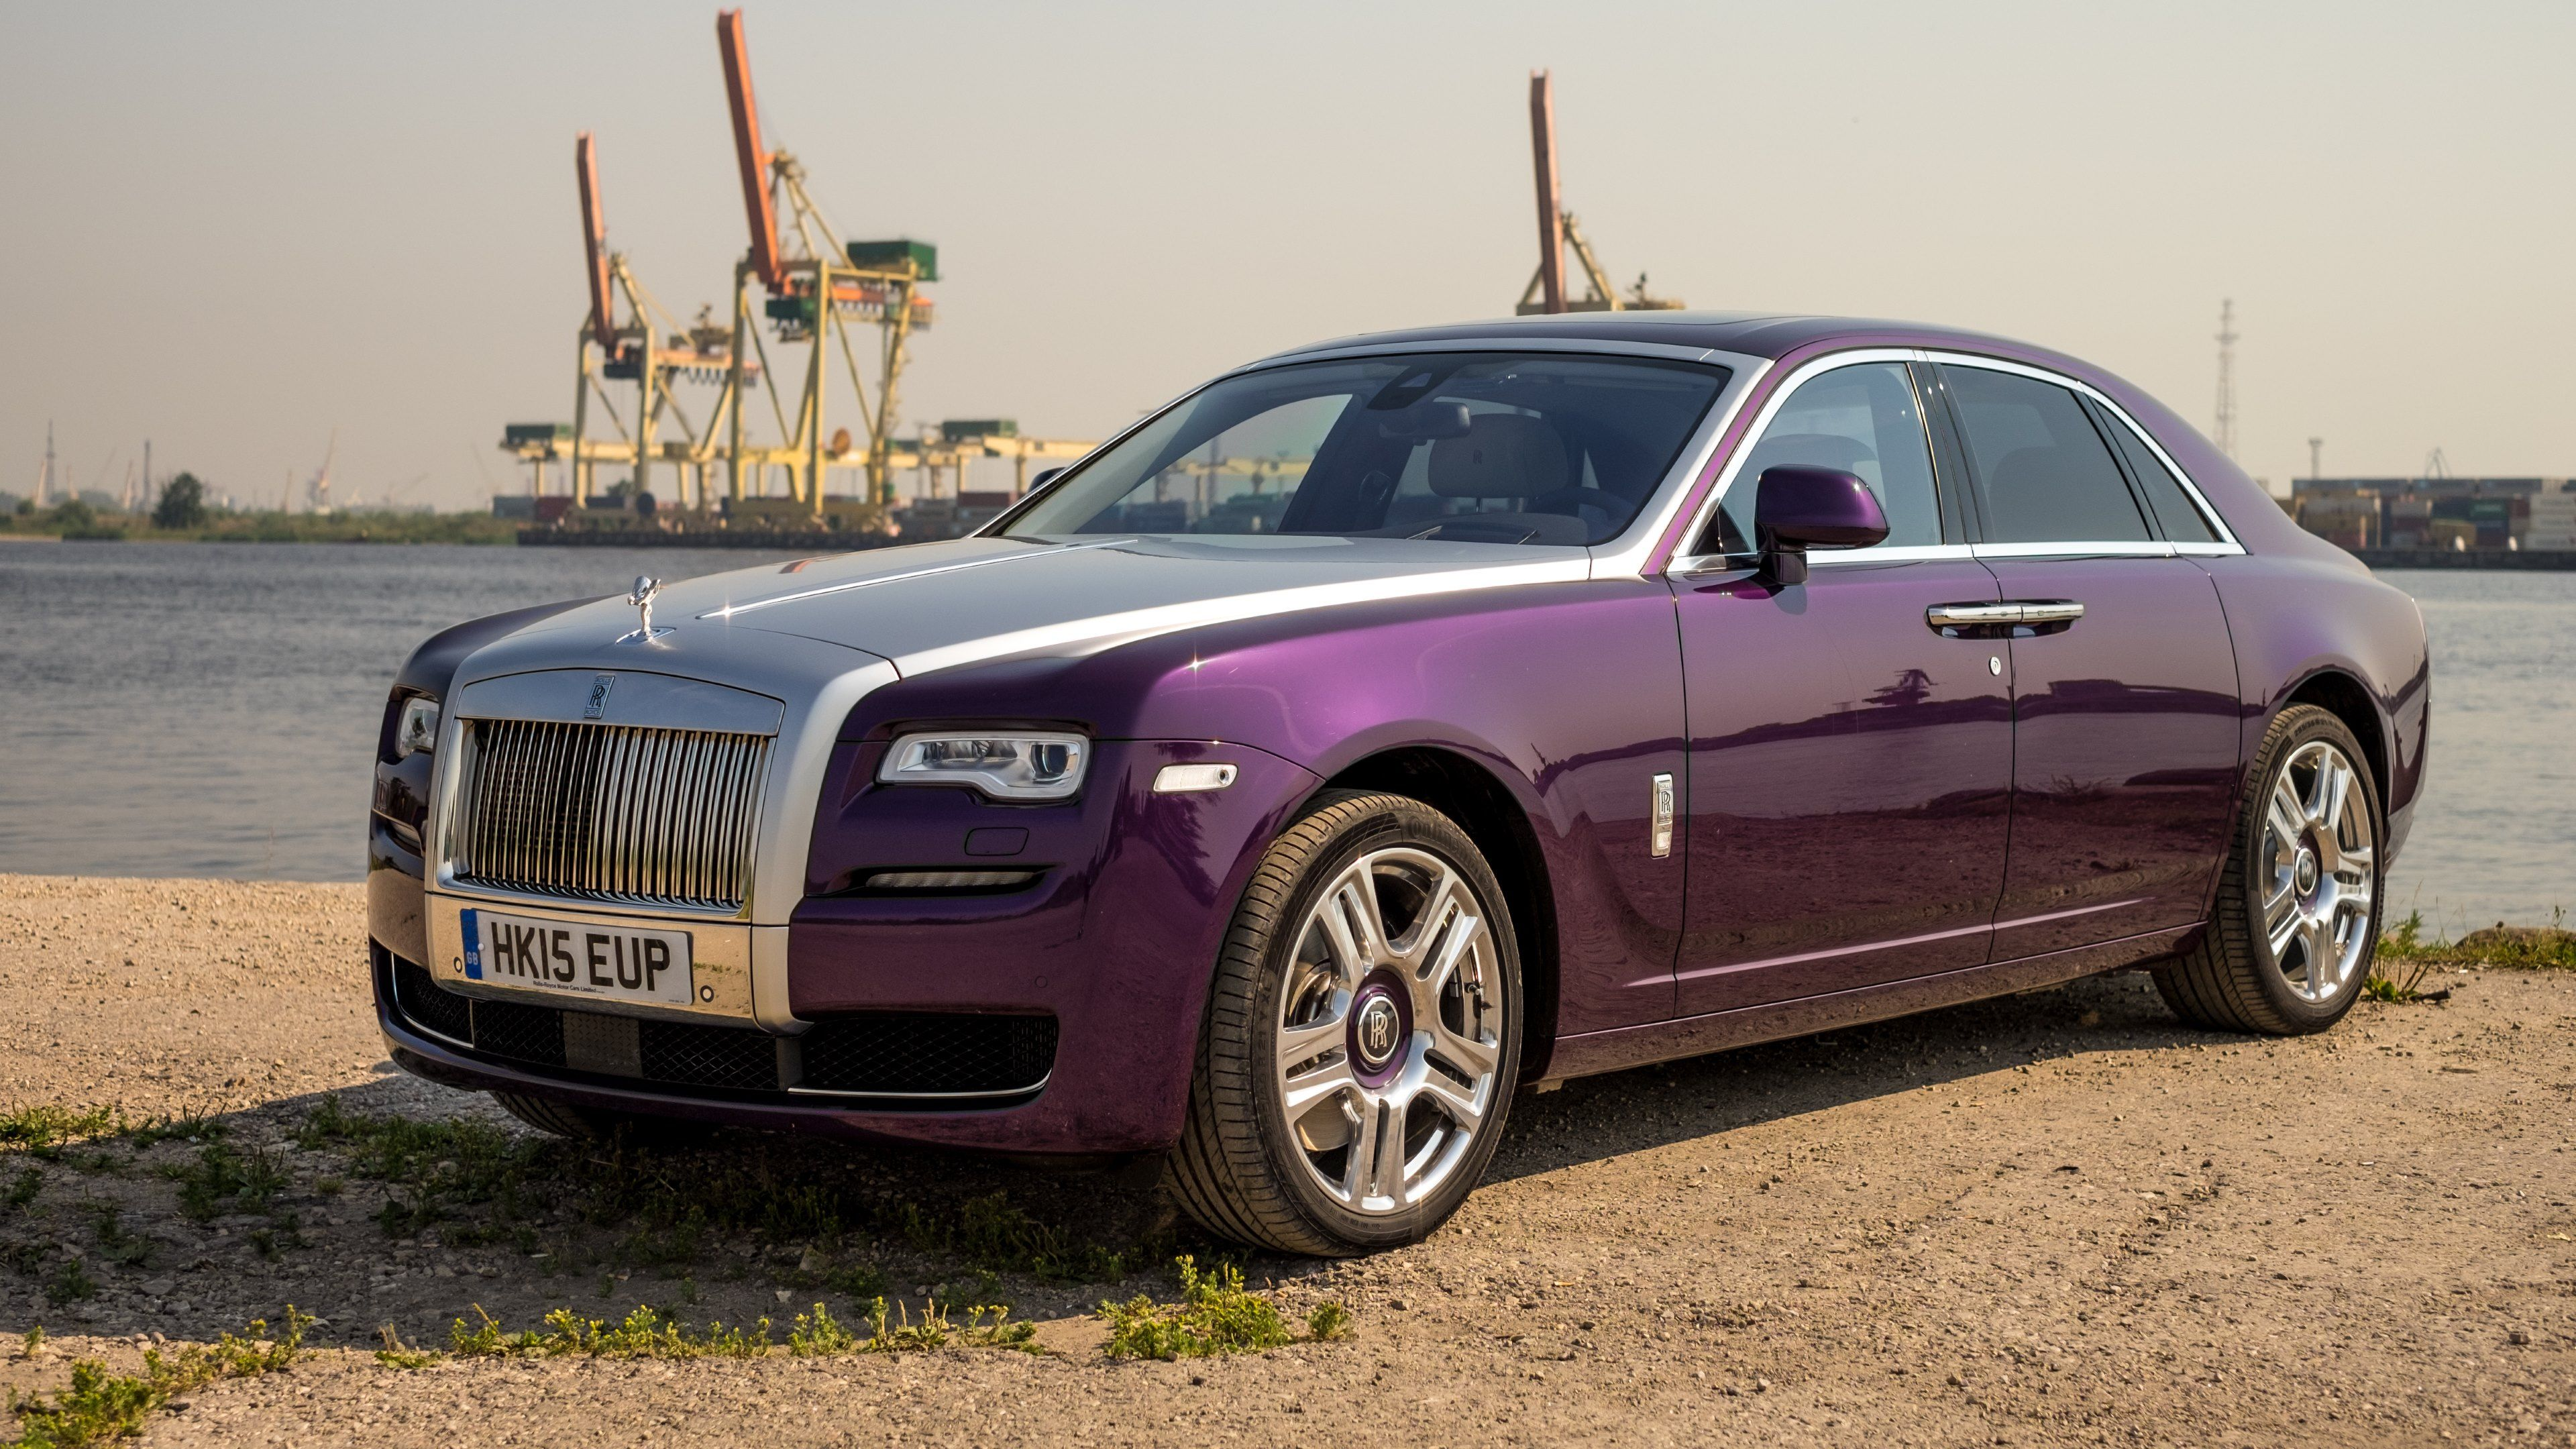 223 Rolls Royce HD Wallpapers | Background Images - Wallpaper Abyss